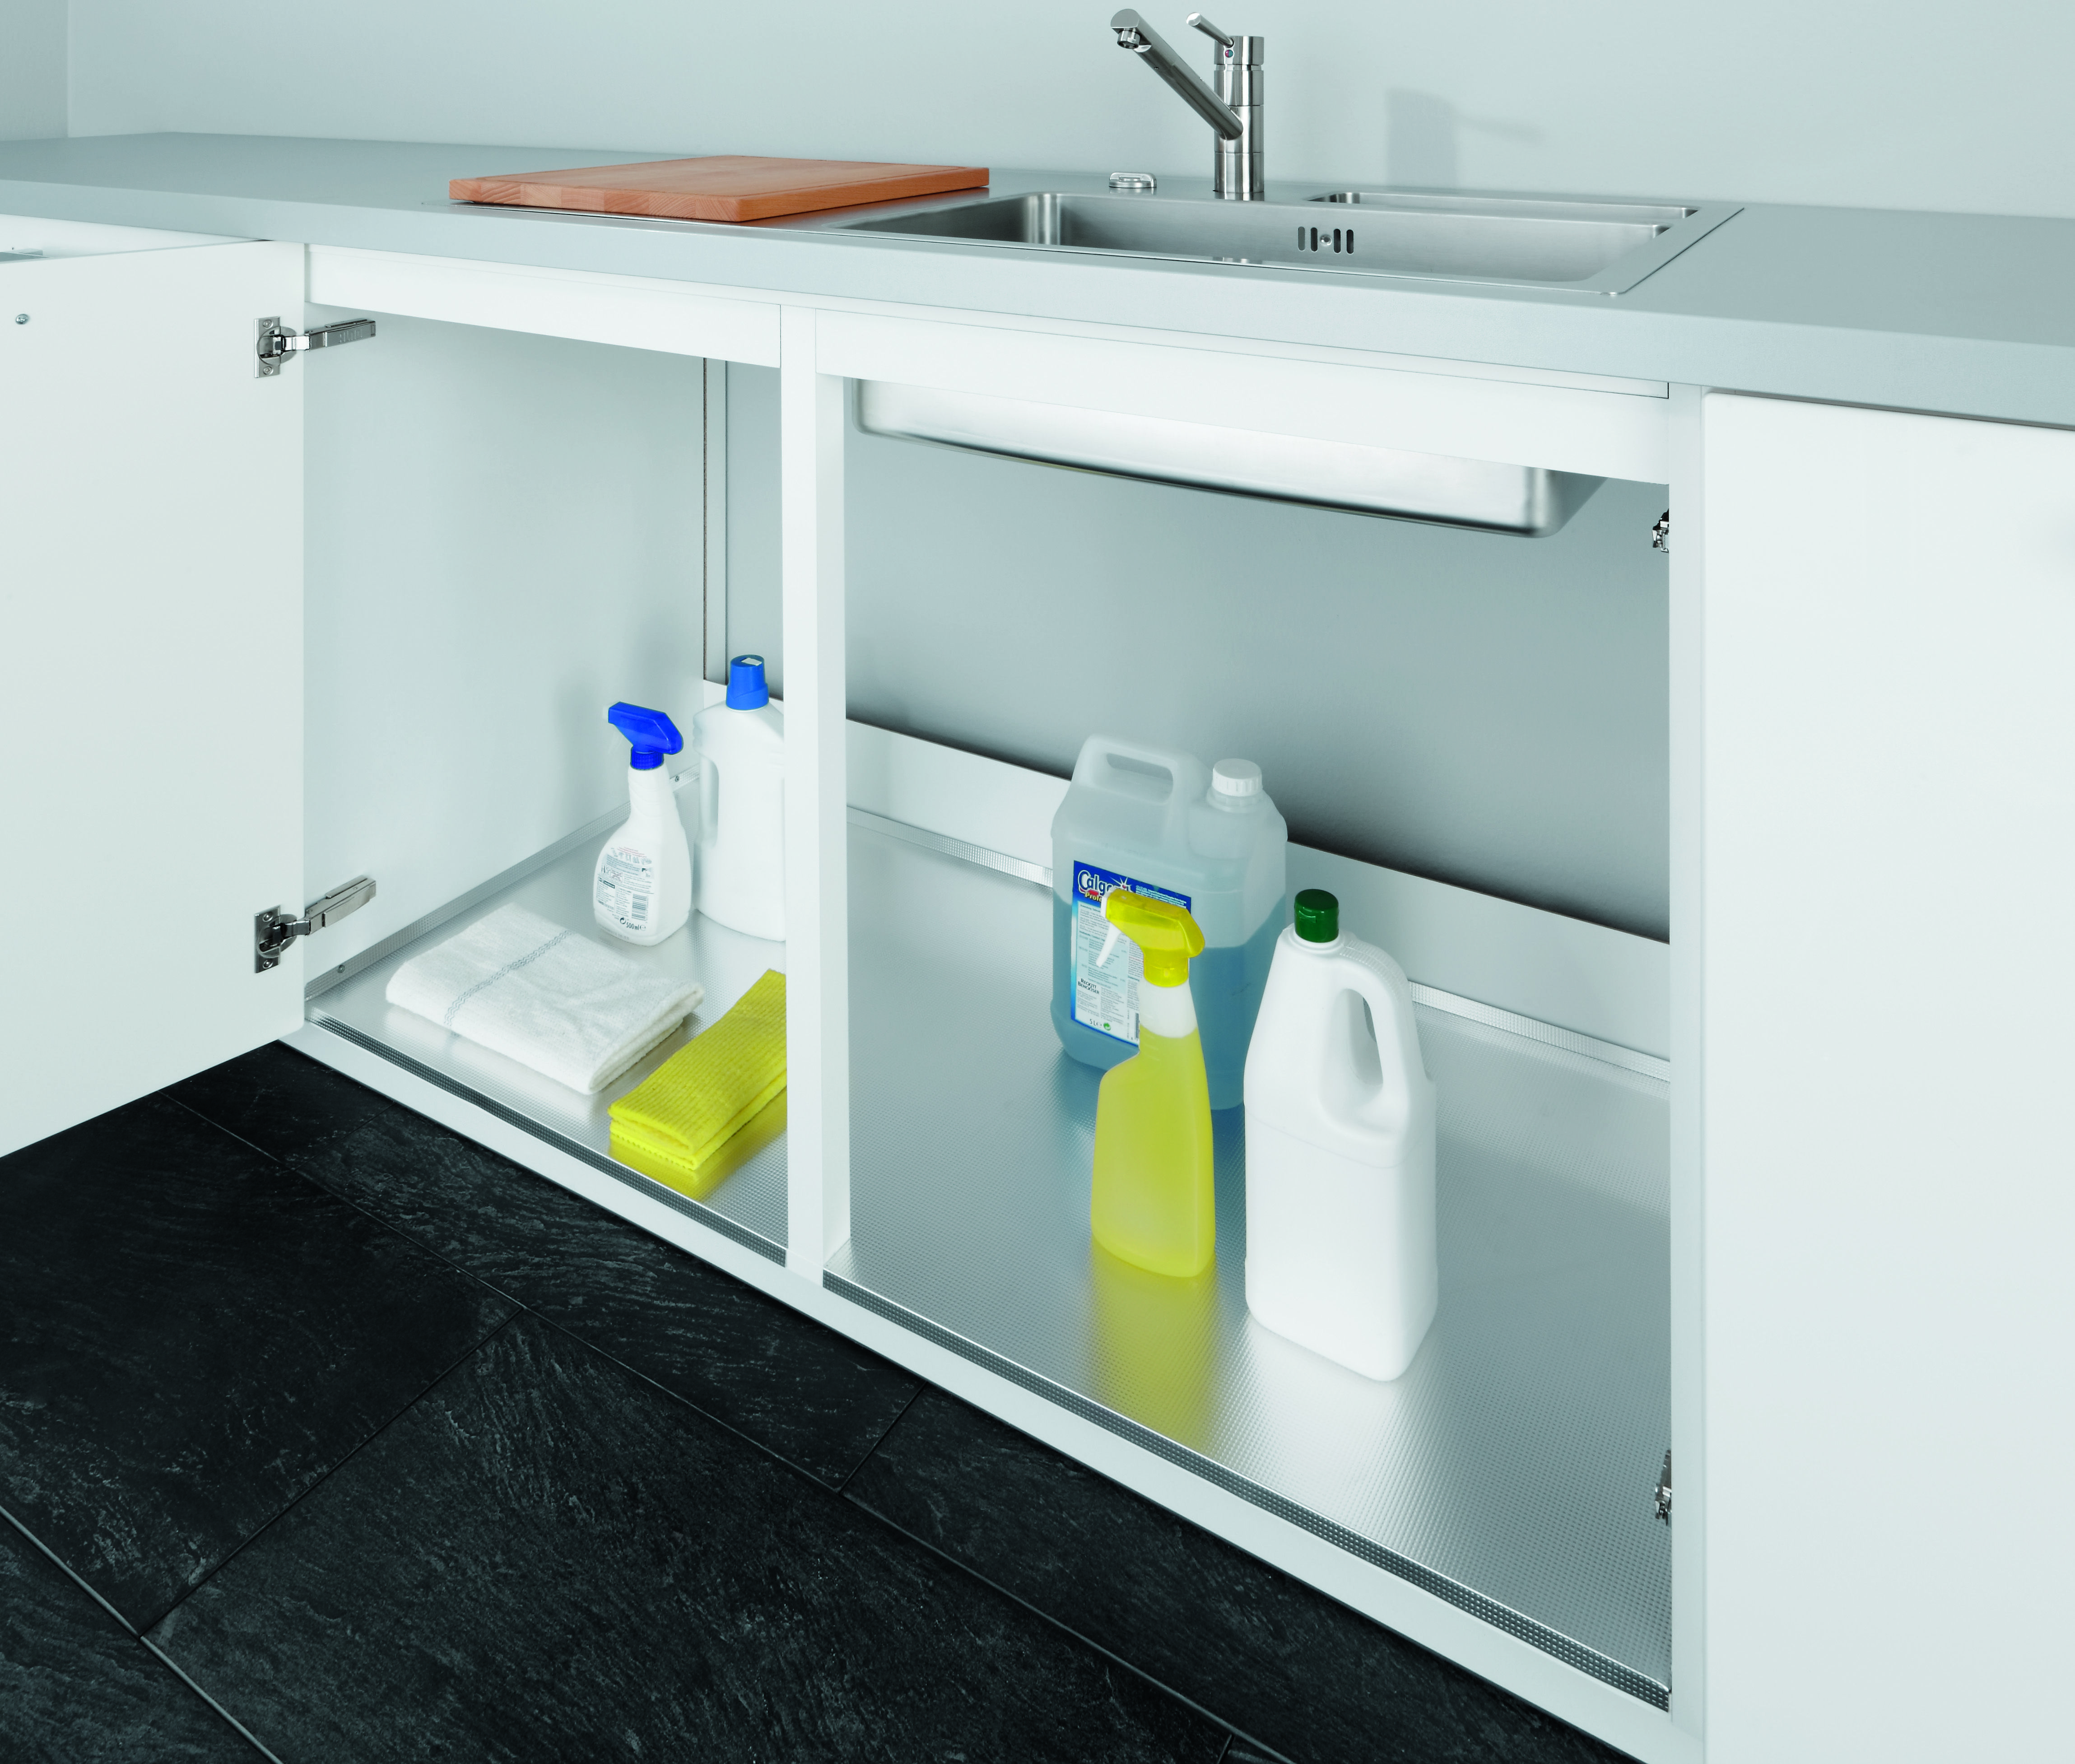 New Alno offer this clever yet simple aluminium sink base liner to catch any drips or leaks